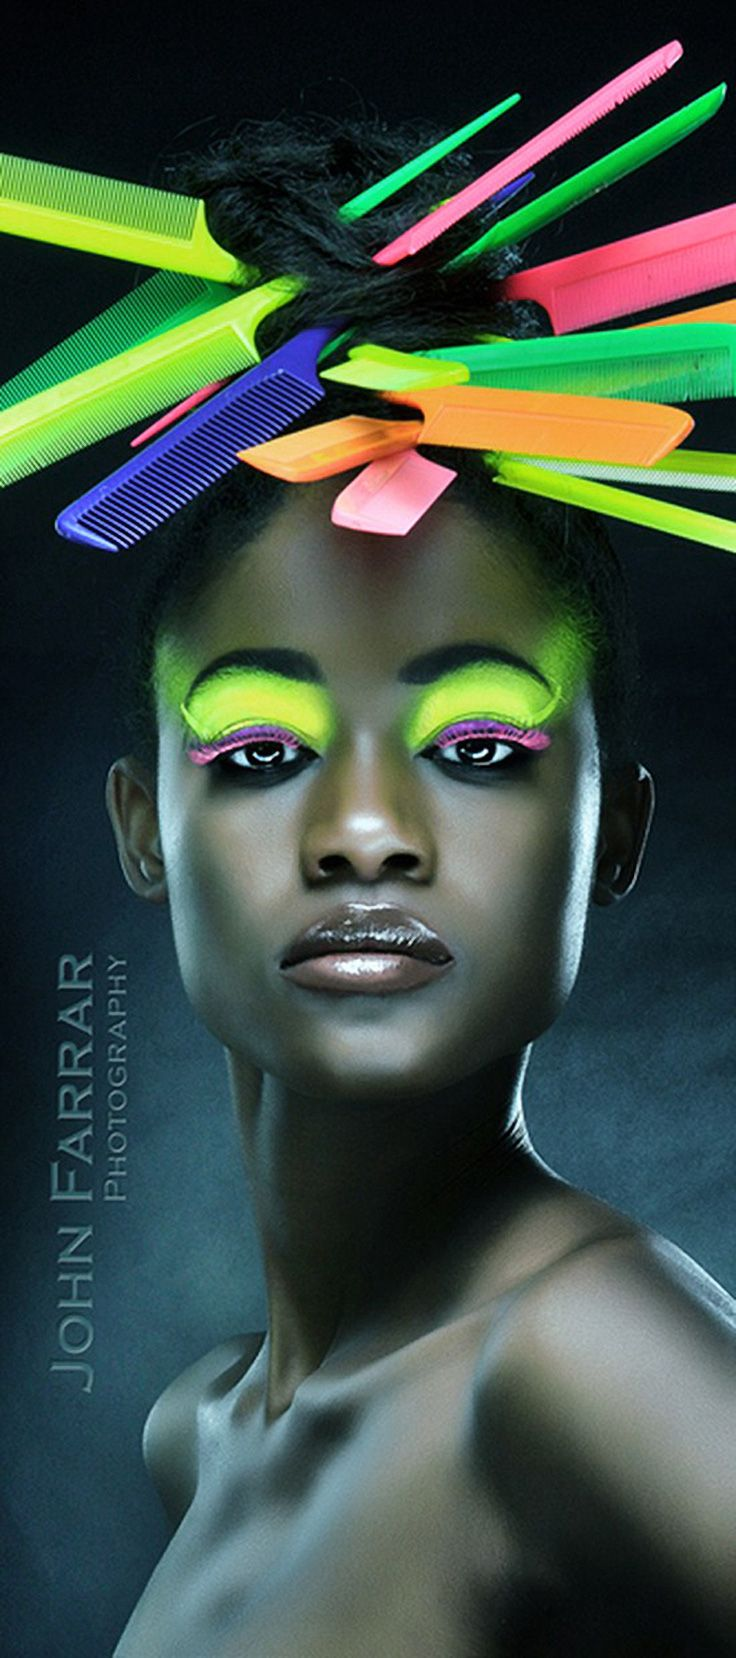 Ground-Breaking Concept of Fashion Photography By John Farrar (neon combs).